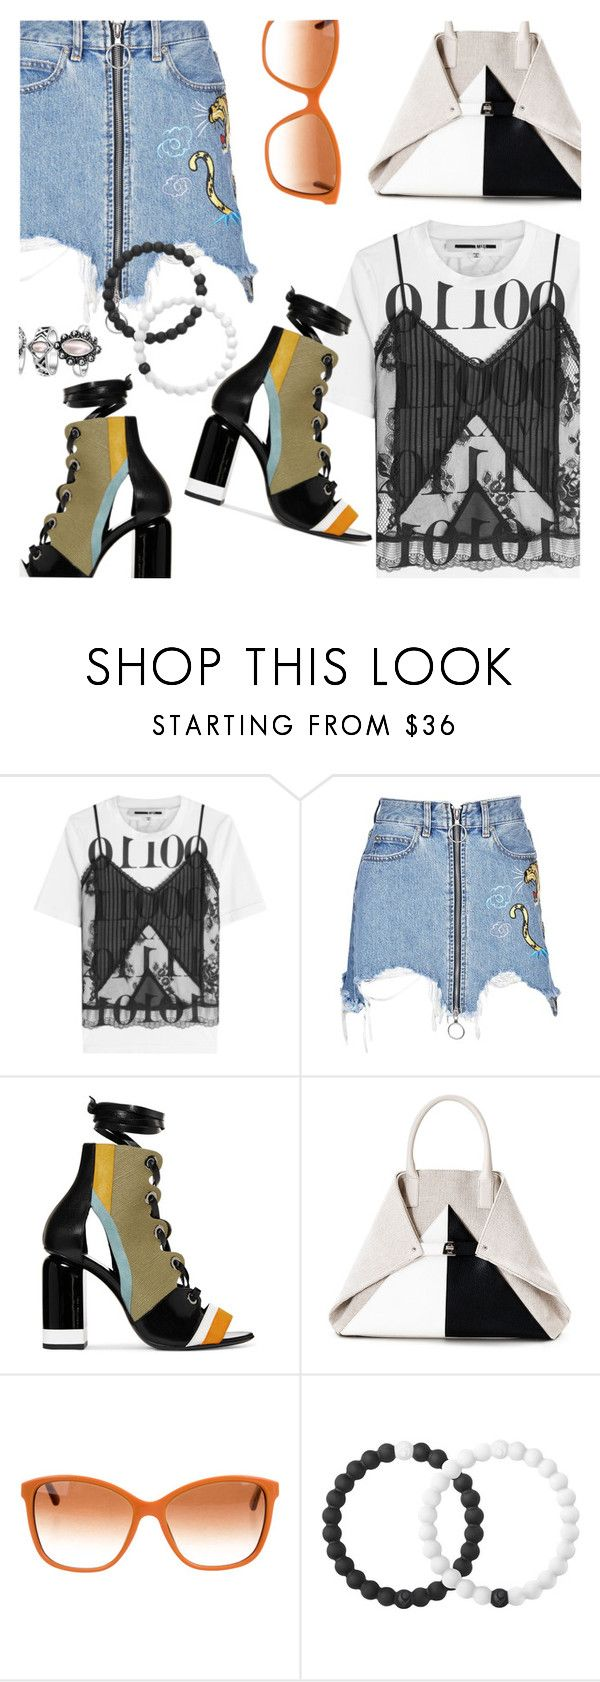 """""""Denim & Lace"""" by stacey-lynne ❤ liked on Polyvore featuring McQ by Alexander McQueen, Marcelo Burlon, Pierre Hardy, Akris, Dolce&Gabbana and Lokai"""